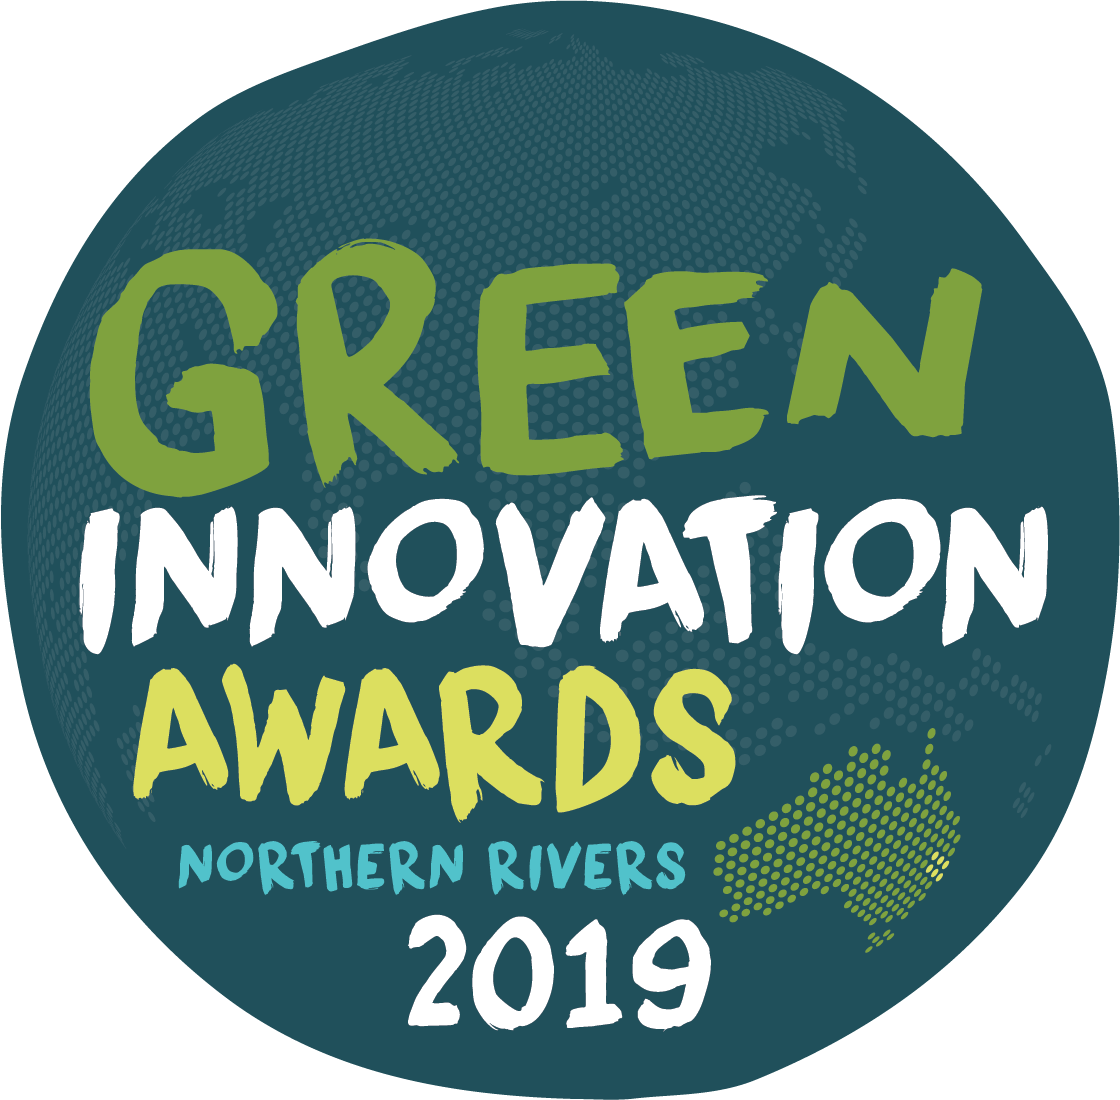 Green Innovation Awards